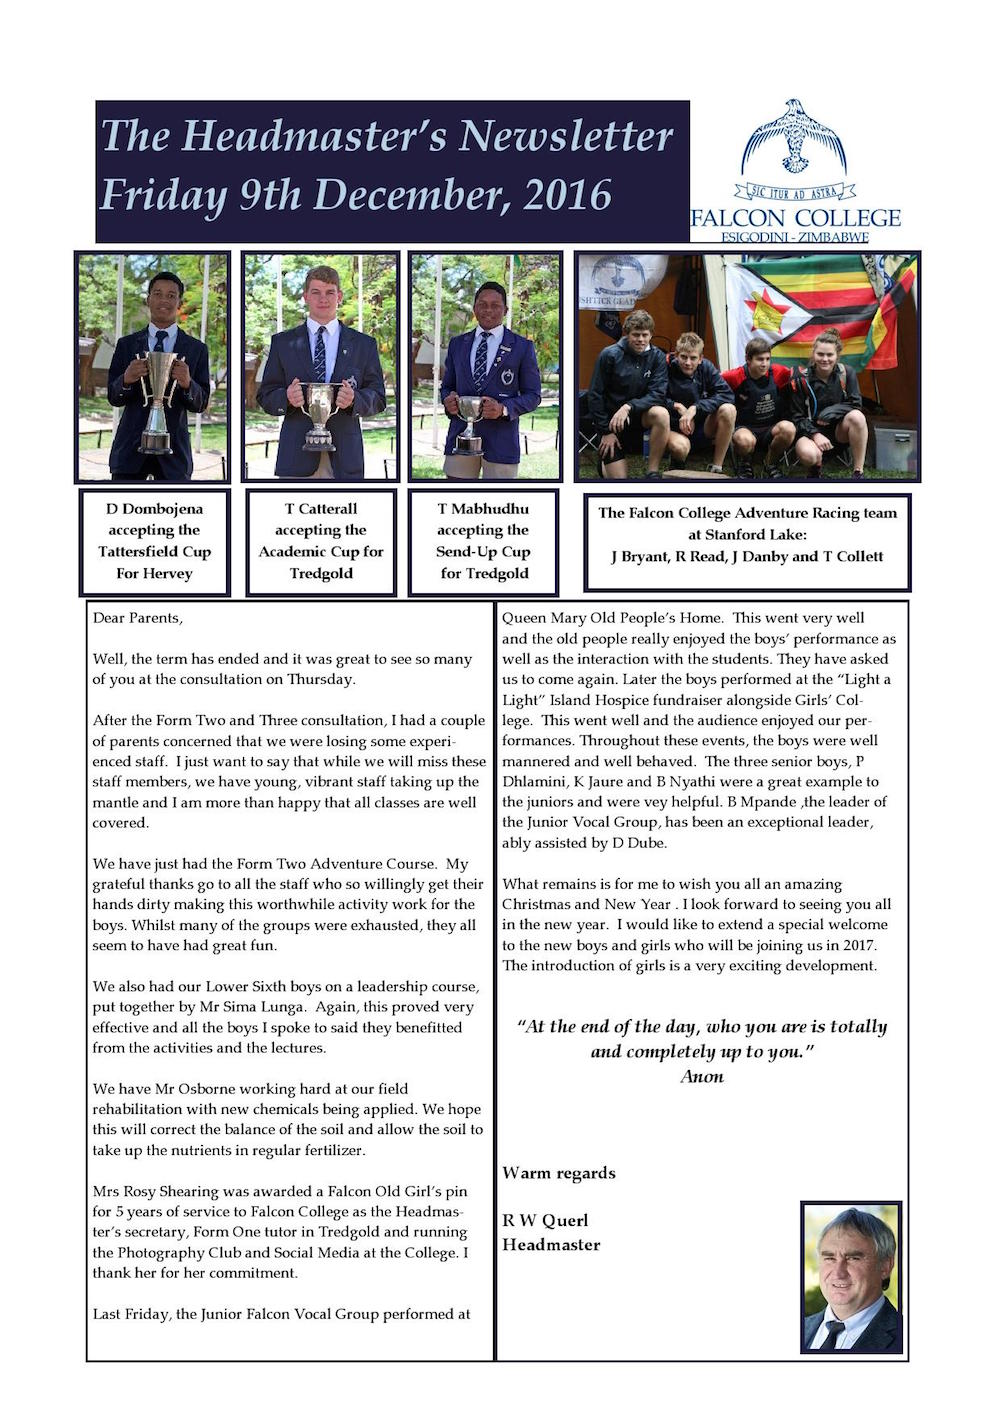 headmasters-newsletter-fri-9th-december-2016-edited_000001